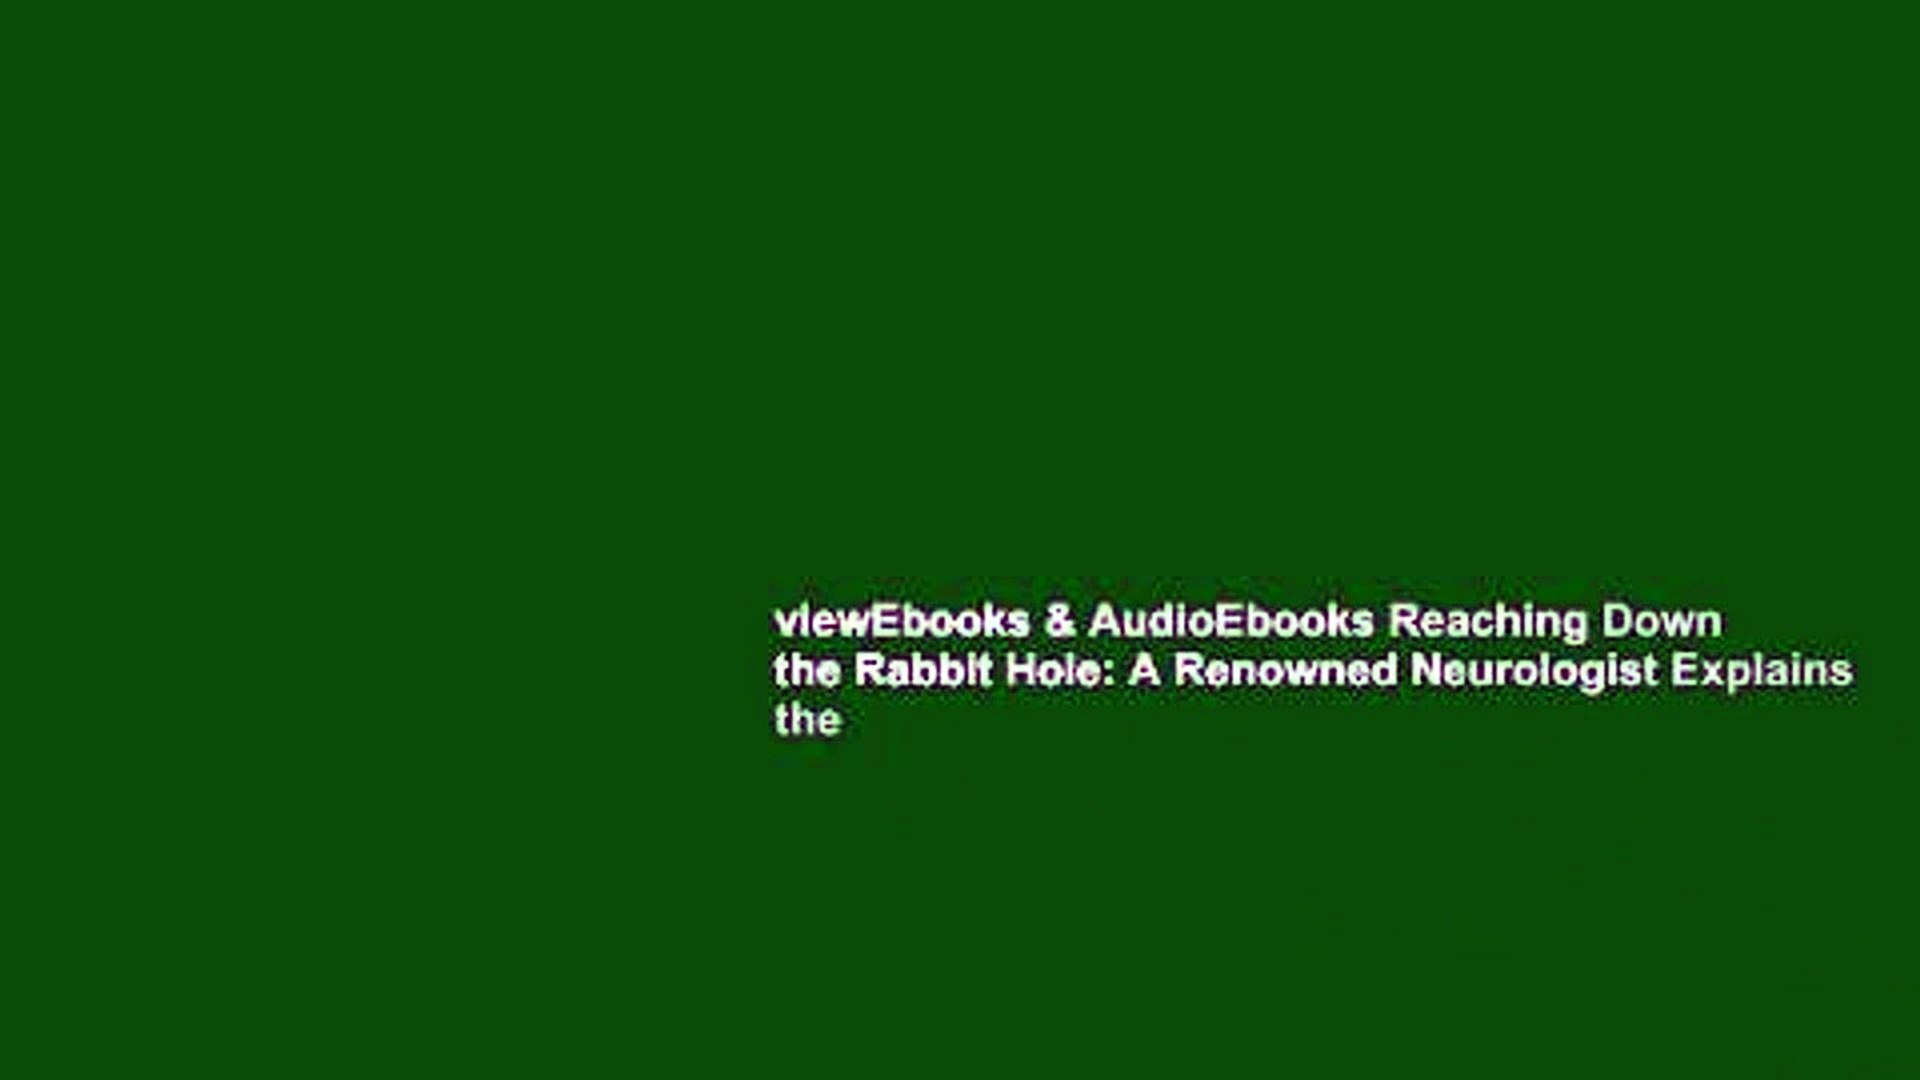 Viewebooks Audioebooks Reaching Down The Rabbit Hole A Renowned